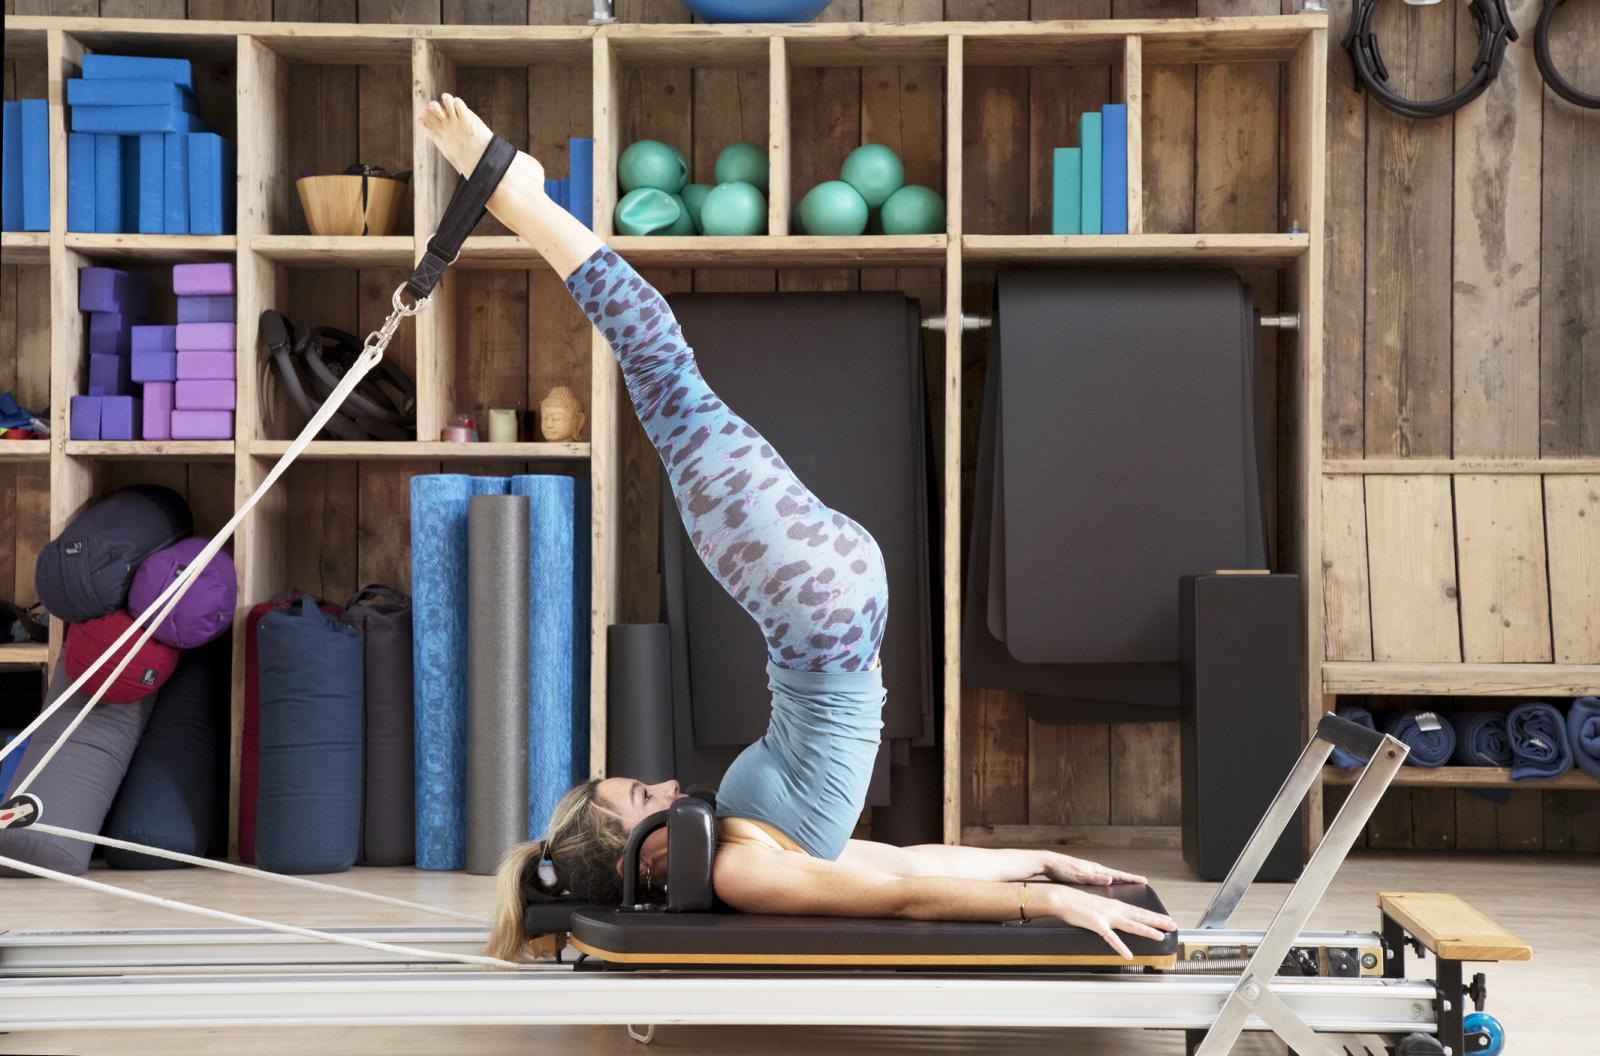 Woman on pilates reformer with legs in straps